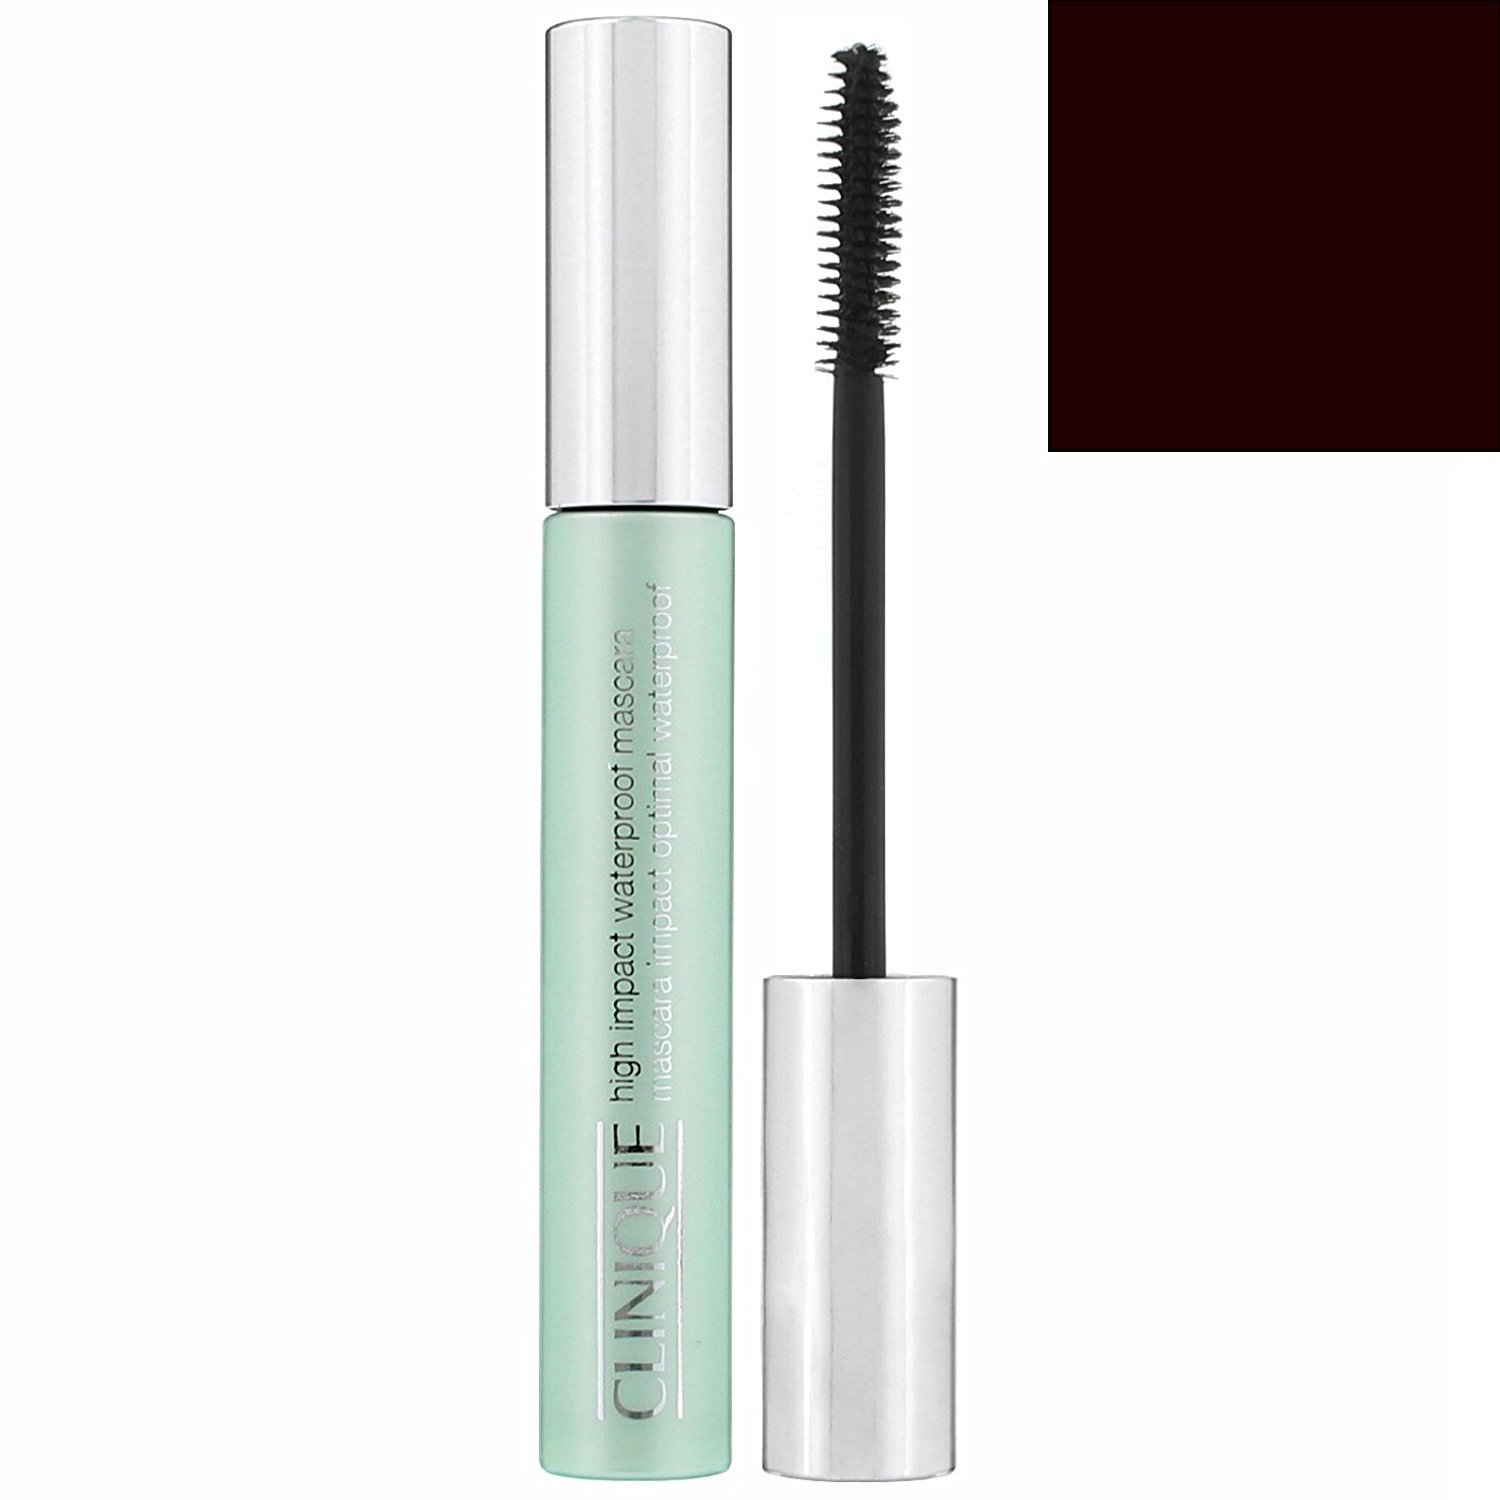 Clinique High Impact Waterproof Mascara 15325